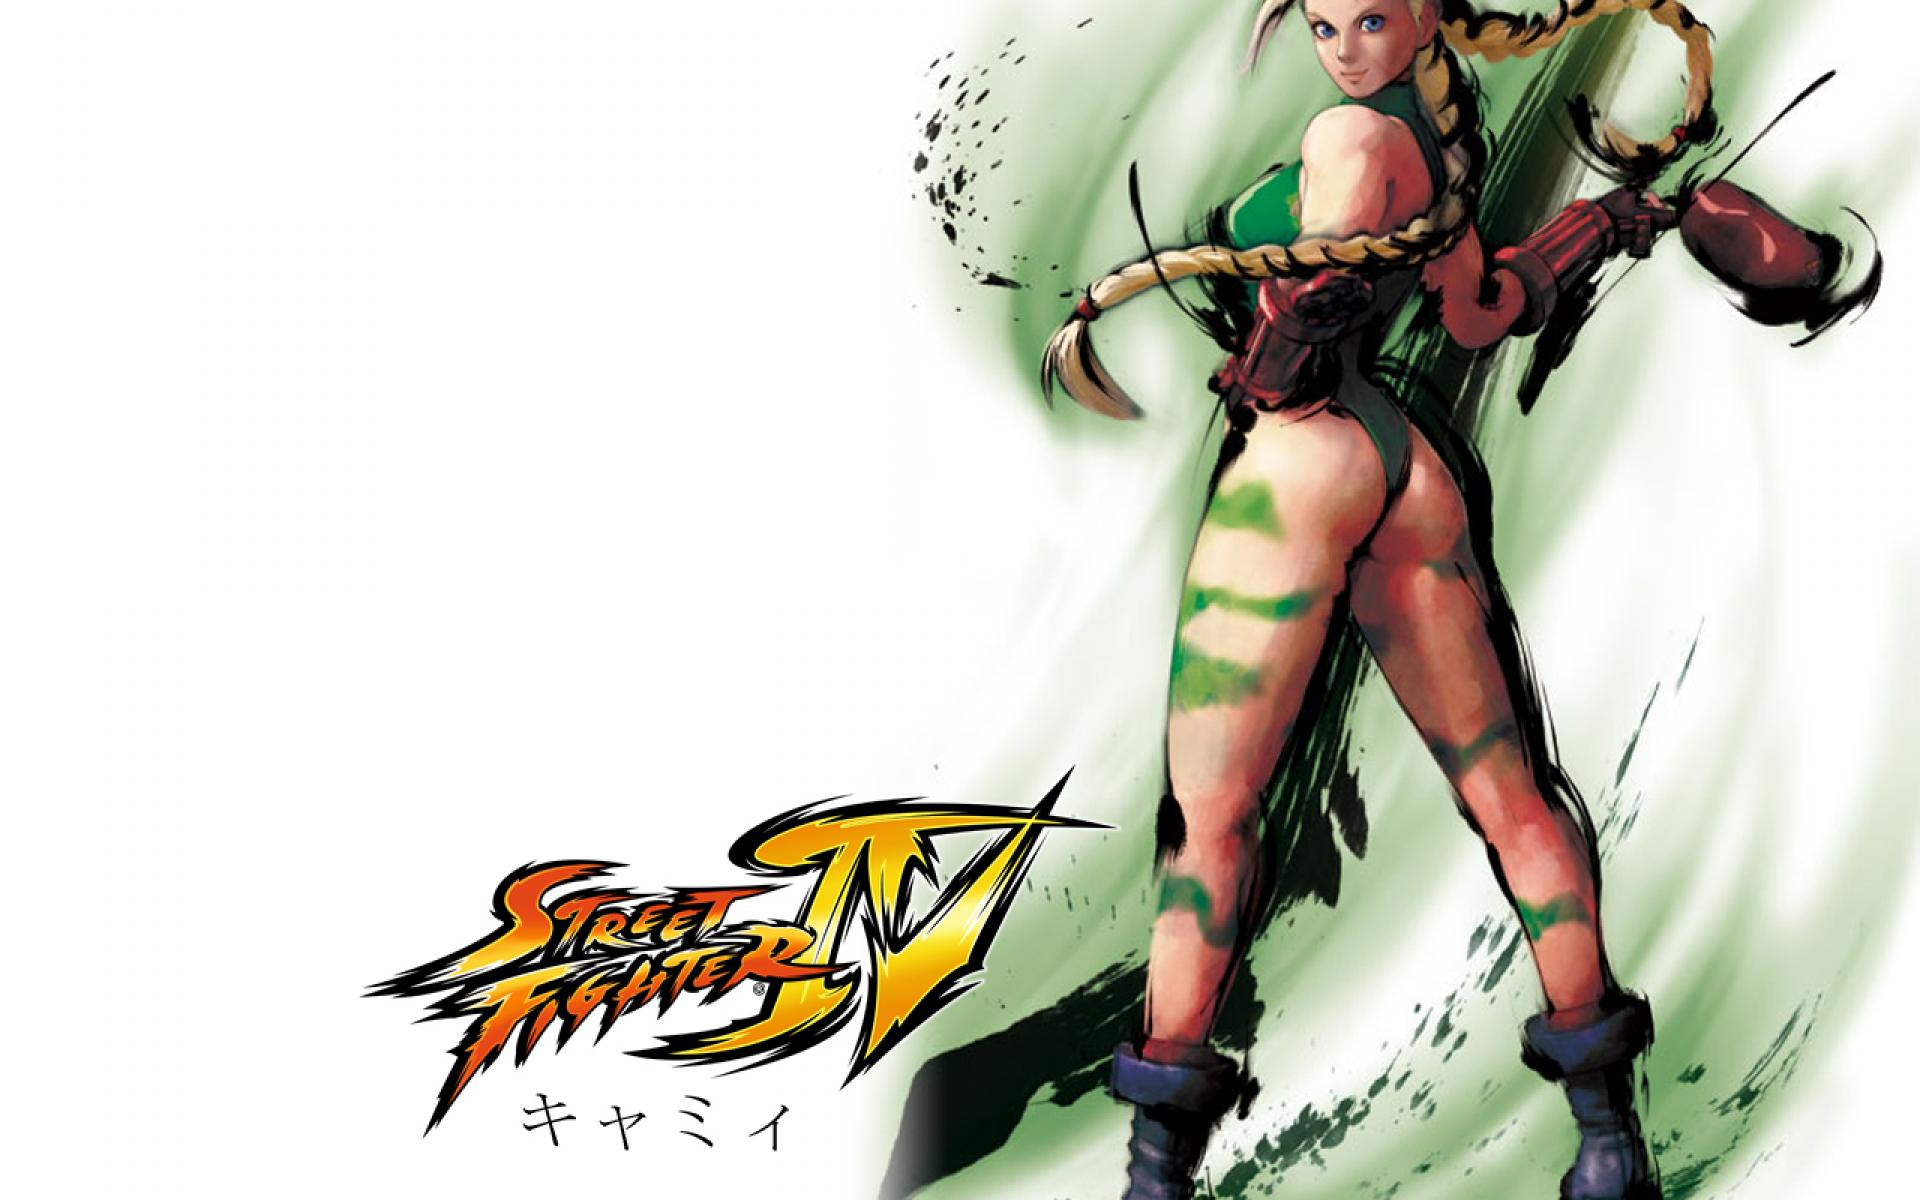 Wallpapers on ClubStreetfighter  DeviantArt 1920x1200